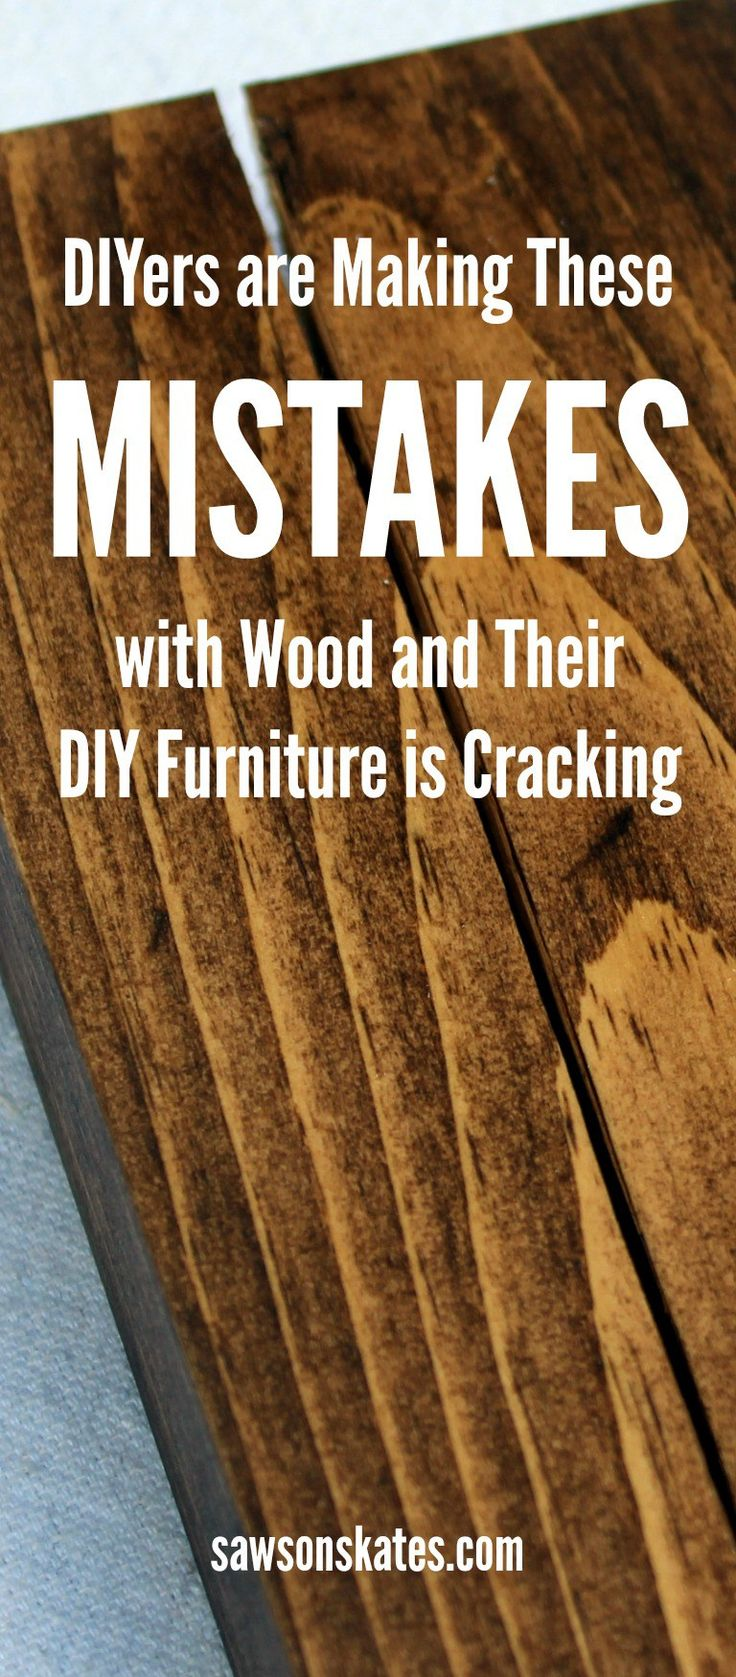 Do you have a DIY furniture project that is cracking? From coffee tables to cutting boards, seasonal changes can cause wood to crack. I'm sharing building tips about how to prevent your wood furniture from cracking. #woodworkingtips #woodworkingideas